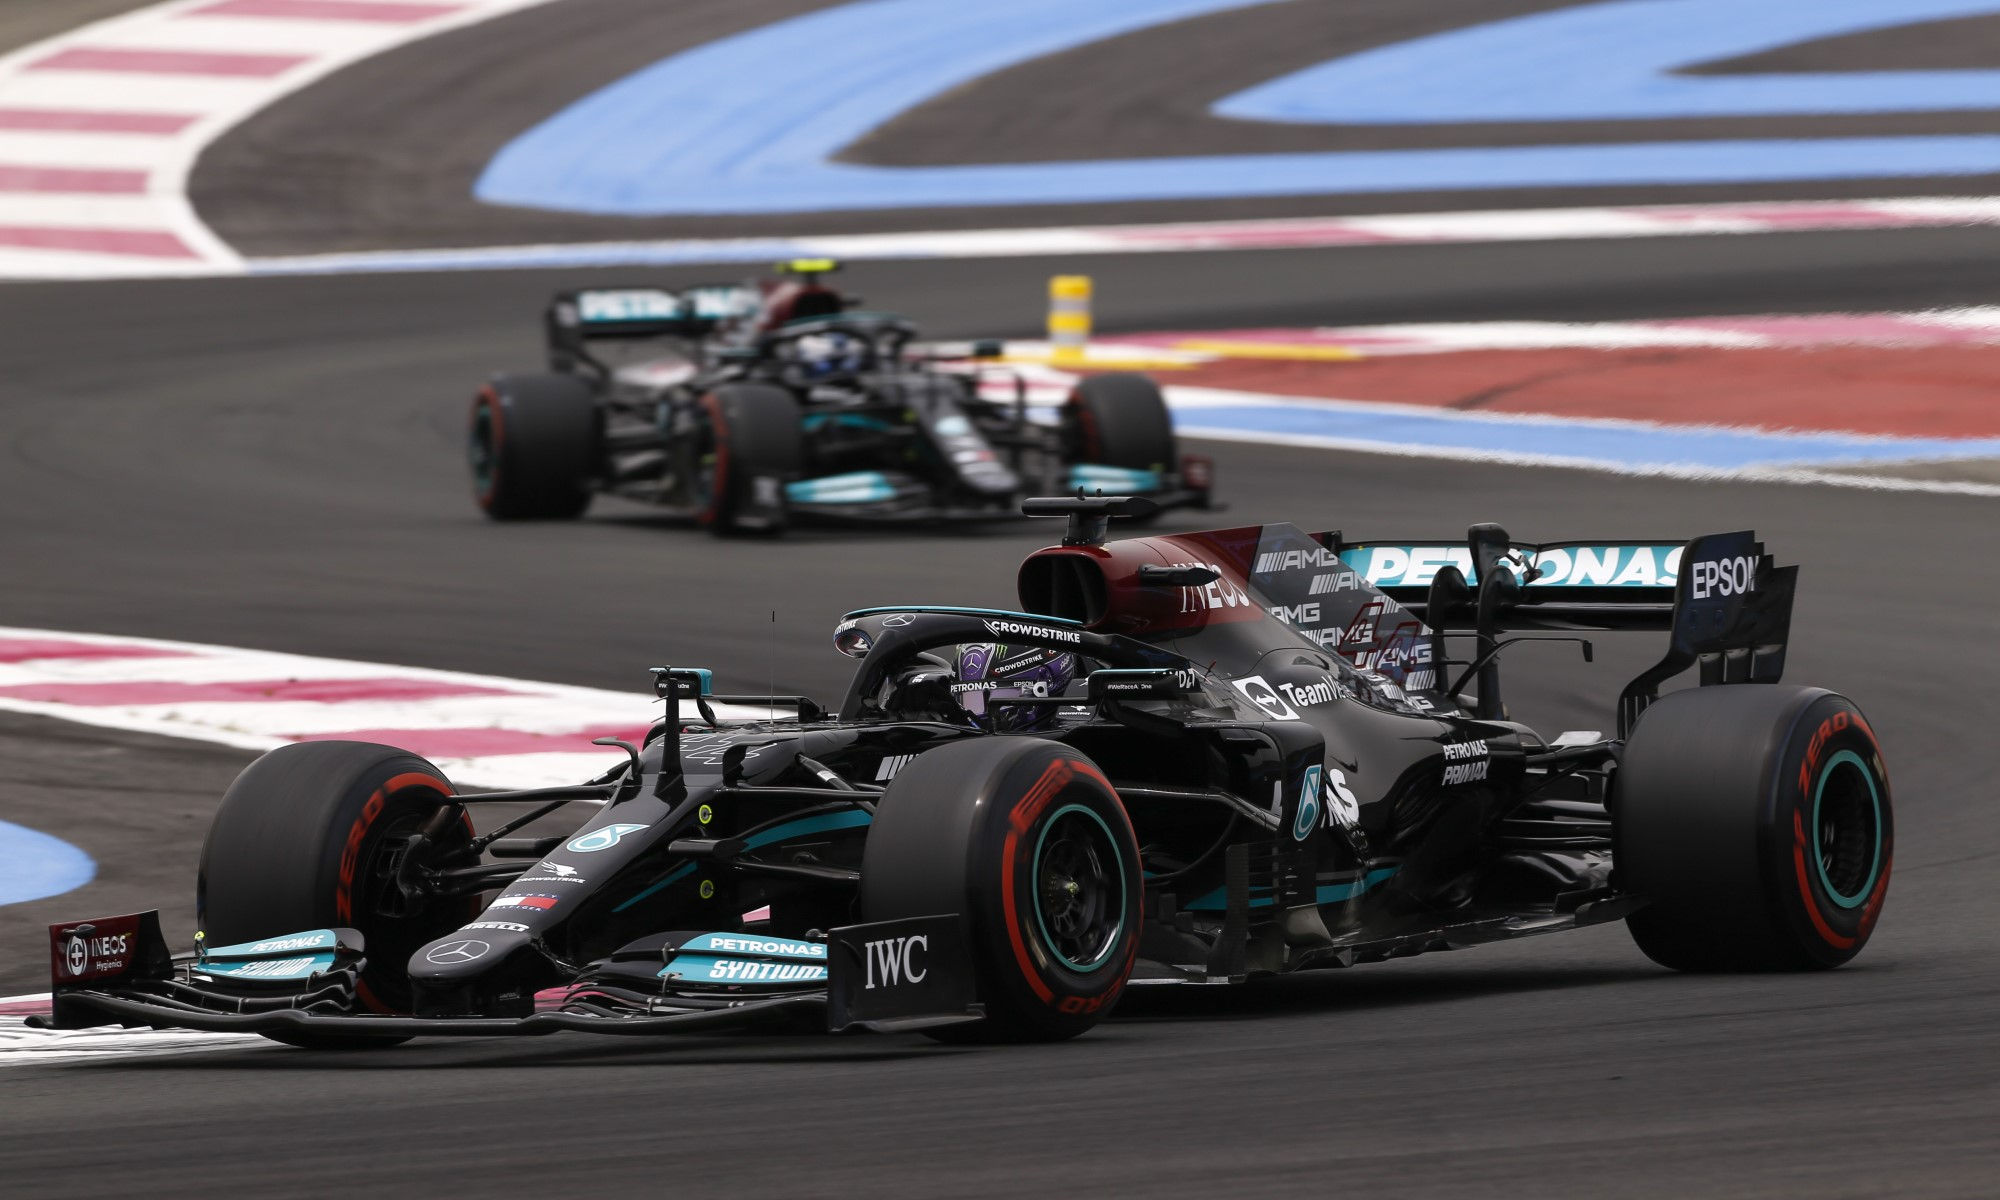 F1 Review France 2021 Mercedes were outgunned